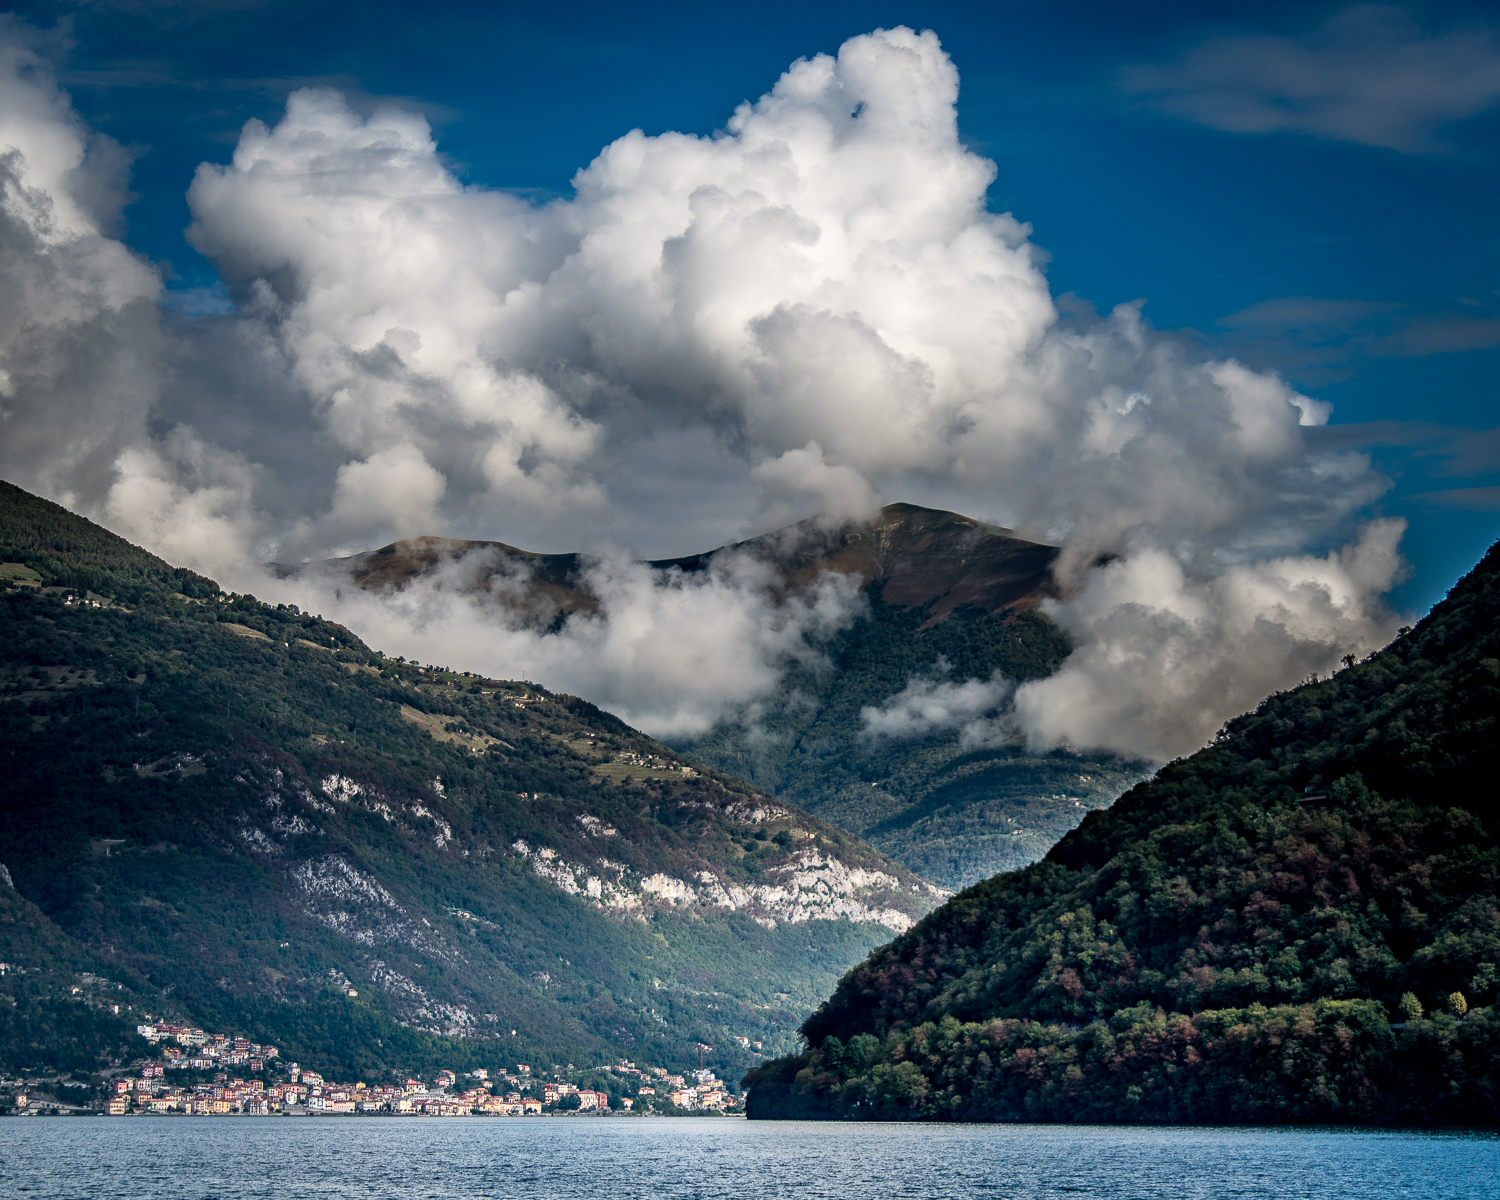 Lago di Como is surrounded by mountains...and the auto road that ends at Bellagio can be seen cutting across the hill on the right